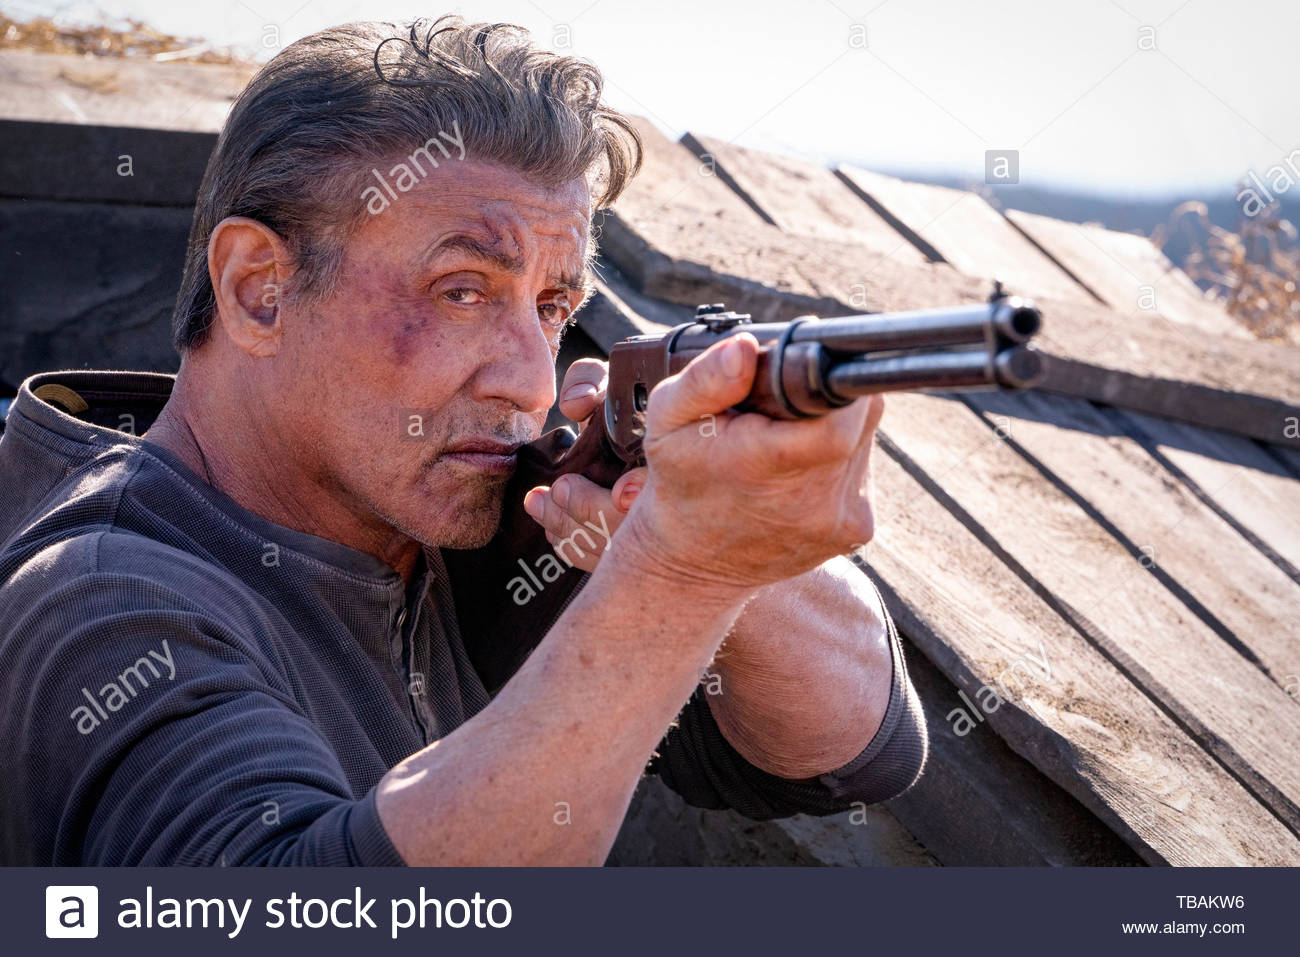 RELEASE DATE: September 20, 2019 TITLE: Rambo: Last Blood STUDIO: Lionsgate DIRECTOR: Adrian Grunberg PLOT: Rambo must confront his past and unearth his ruthless combat skills to exact revenge in a final mission. A deadly journey of vengeance, RAMBO: LAST BLOOD marks the last chapter of the legendary series. STARRING: SYLVESTER STALLONE as Rambo. (Credit Image: © Lionsgate/Entertainment Pictures) - Stock Image